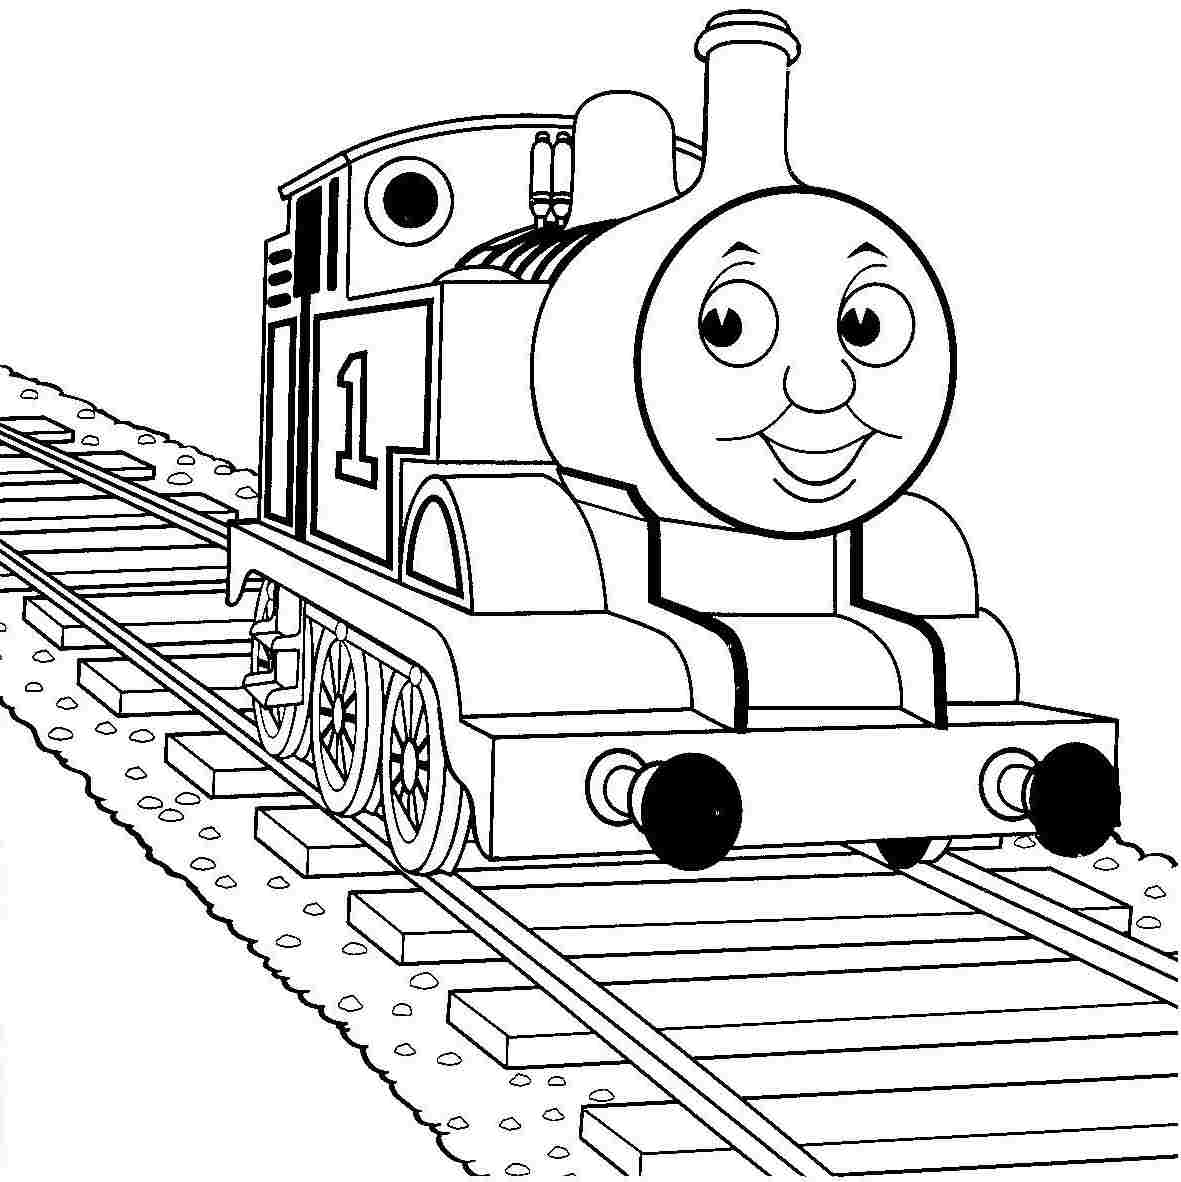 train coloring free printable train coloring pages for kids coloring train